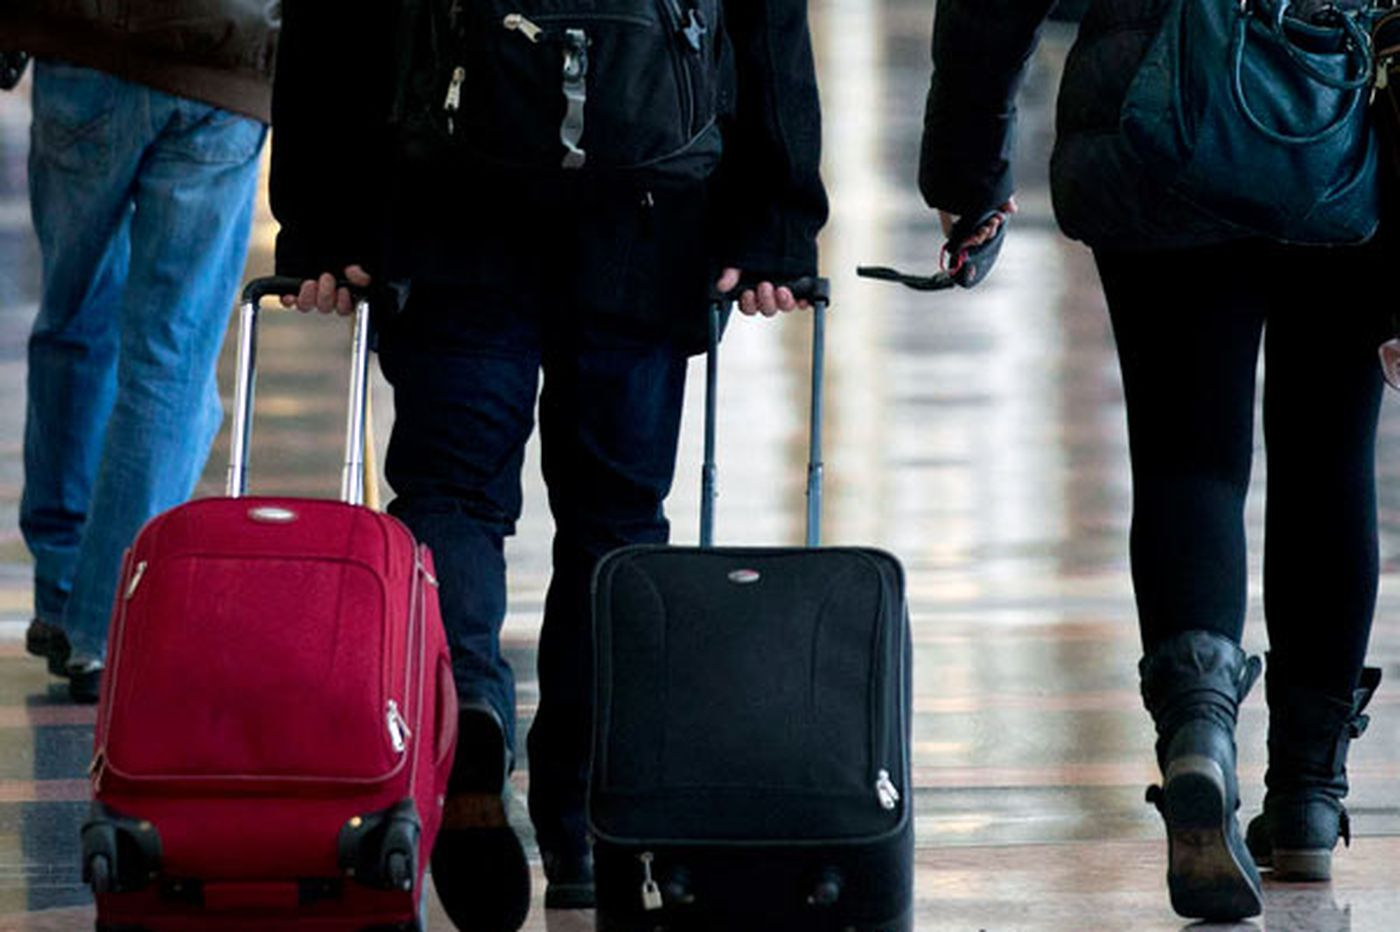 Airline profits rise as oil drops; Will fares fall, too?